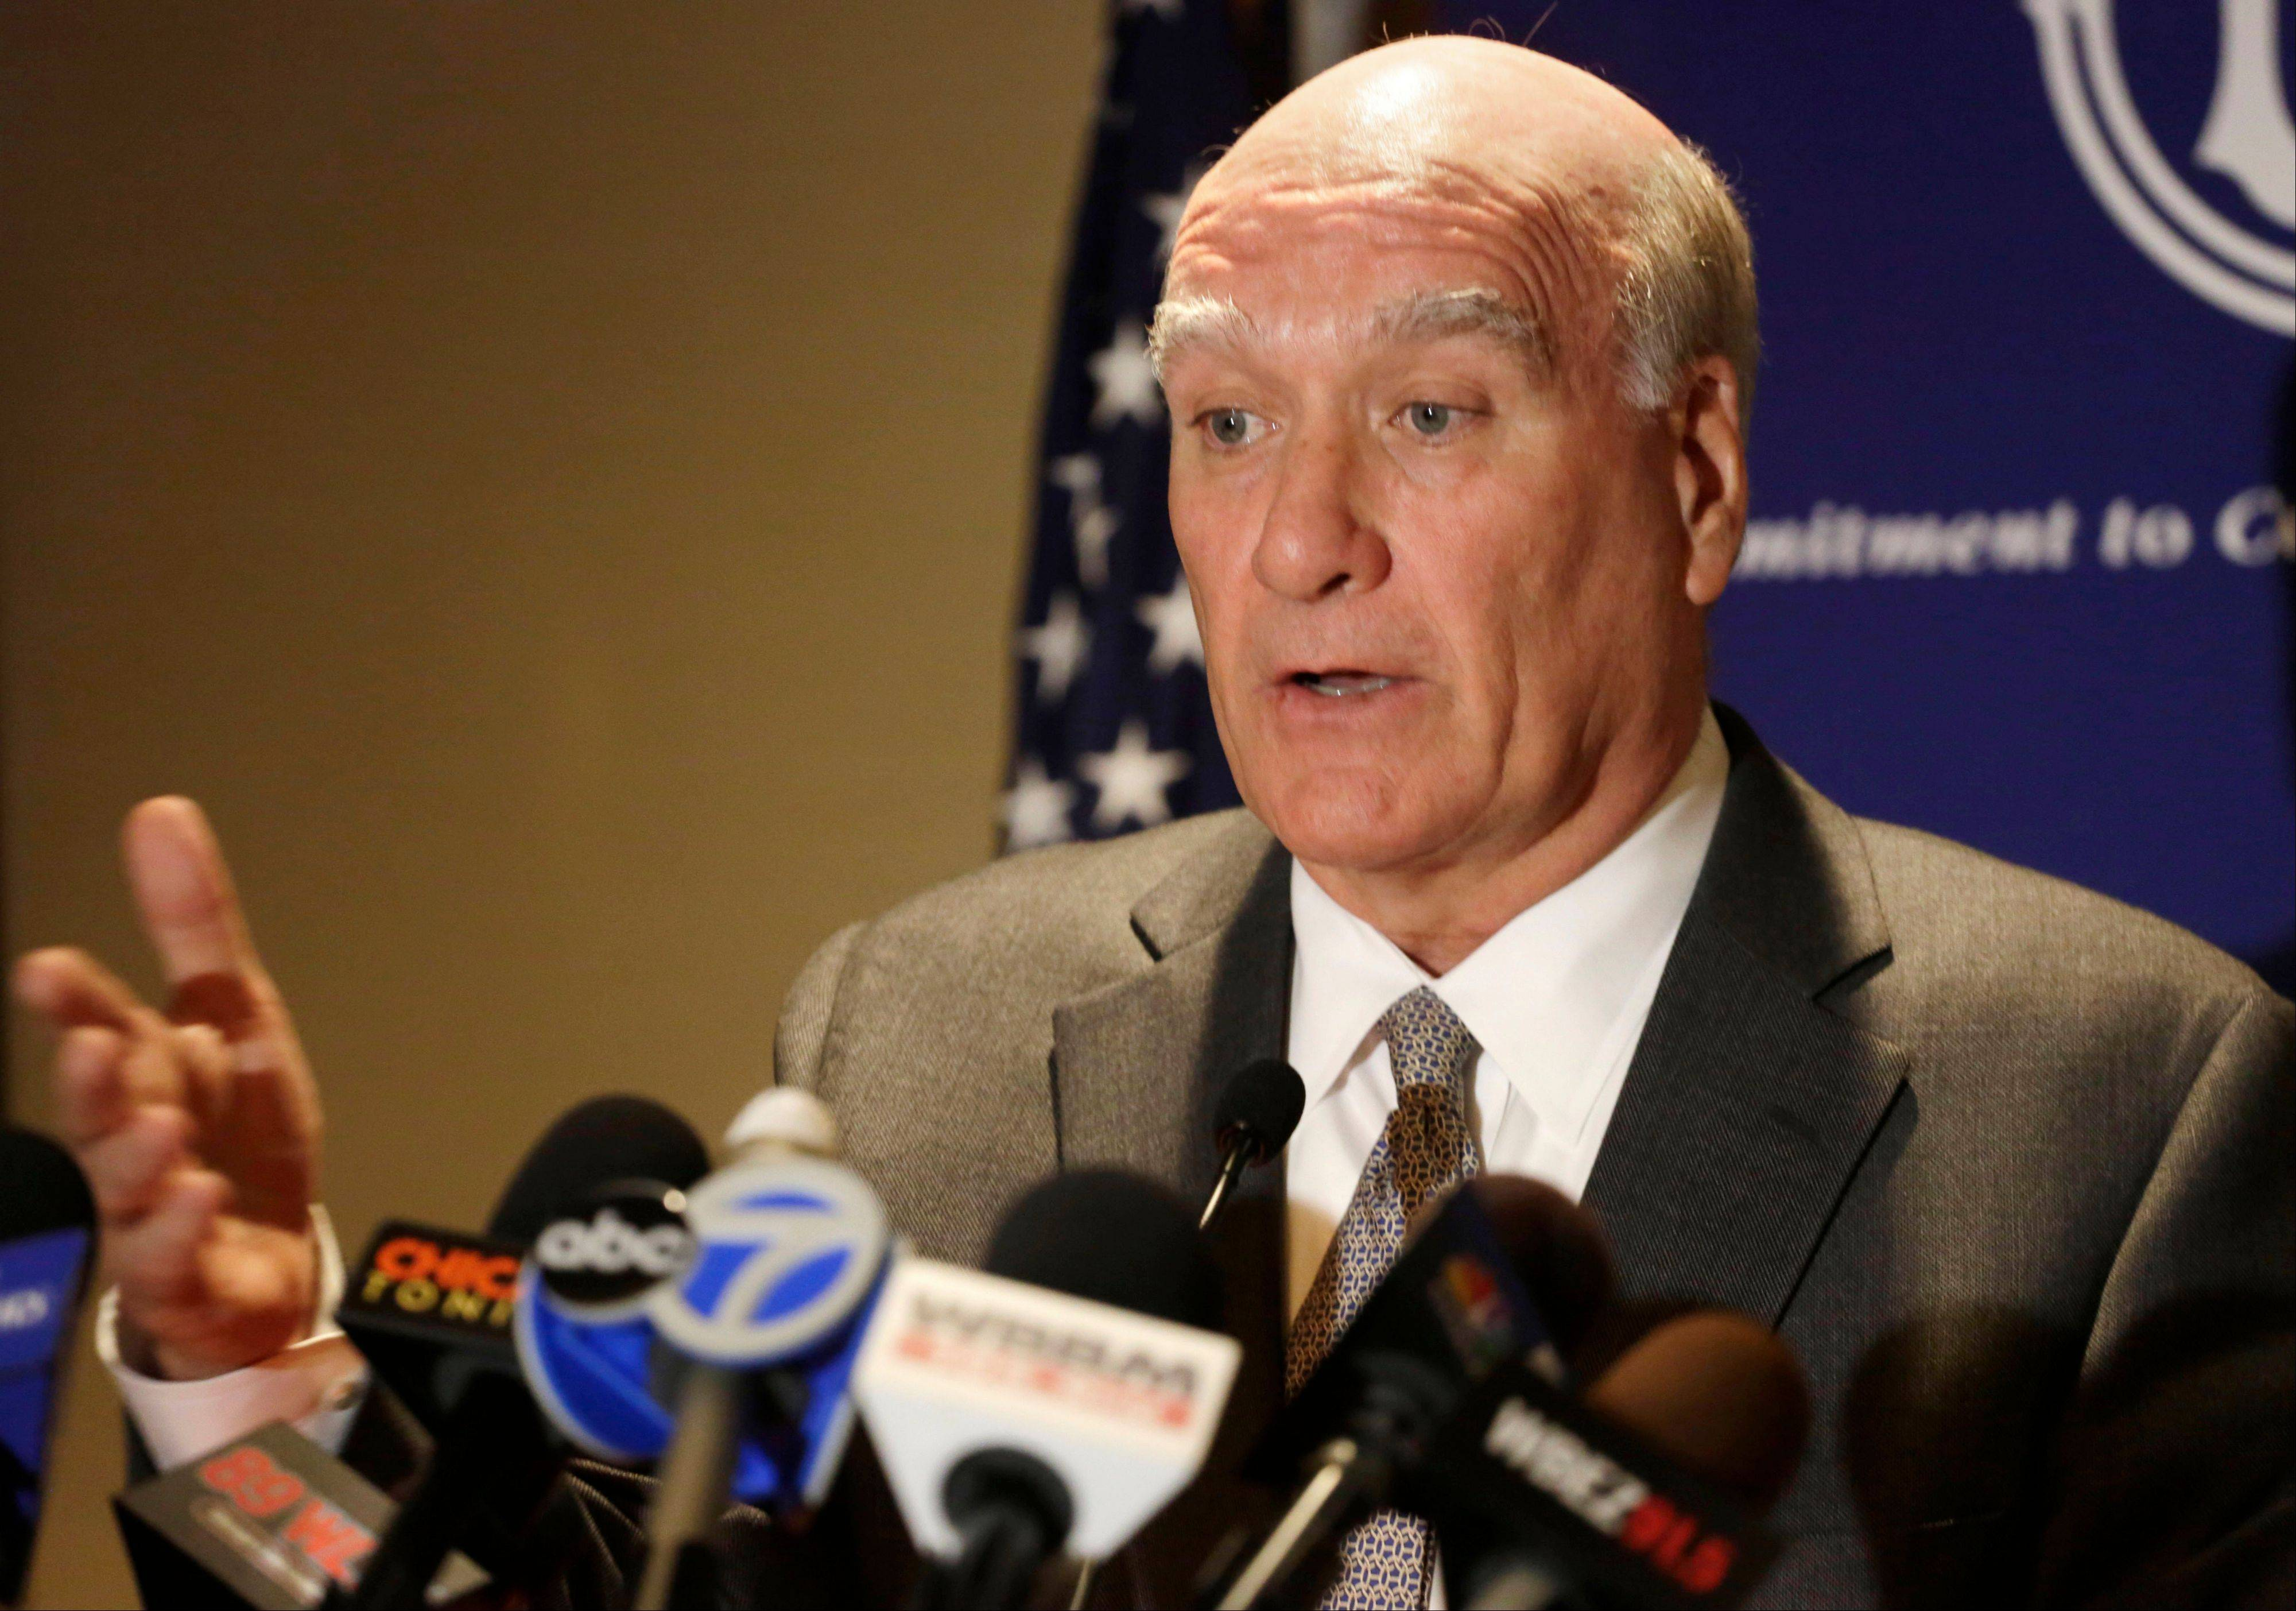 Former White House chief of staff Bill Daley, who is running challenging Illinois Gov. Pat Quinn, speaks at a news conference in Chicago.